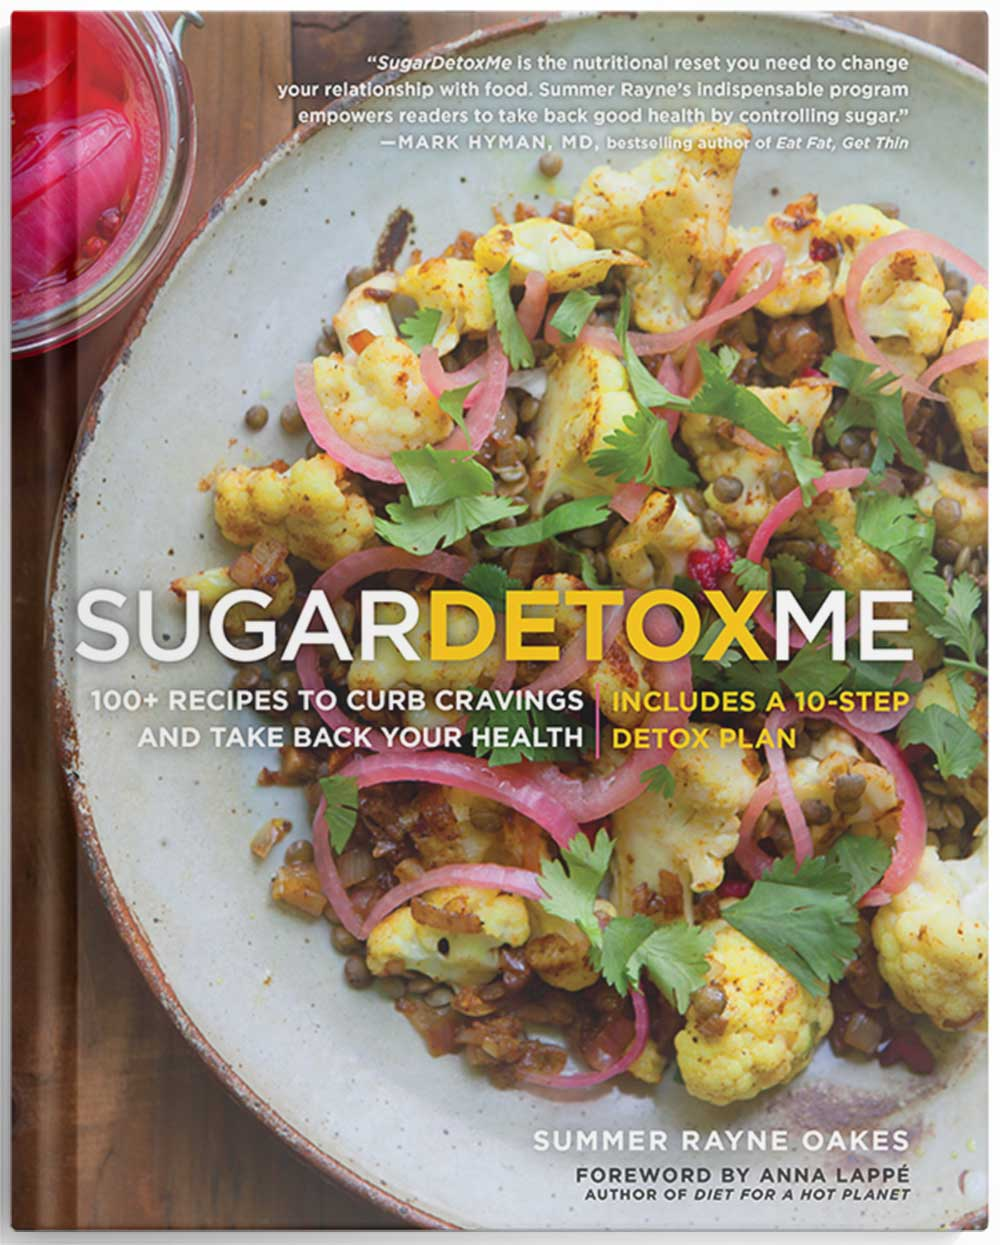 Books events sugardetoxme ready to reduce how much sugar is in your diet and take back your health summer rayne oakes gives us a no nonsense easy to follow cookbook and guide that forumfinder Images